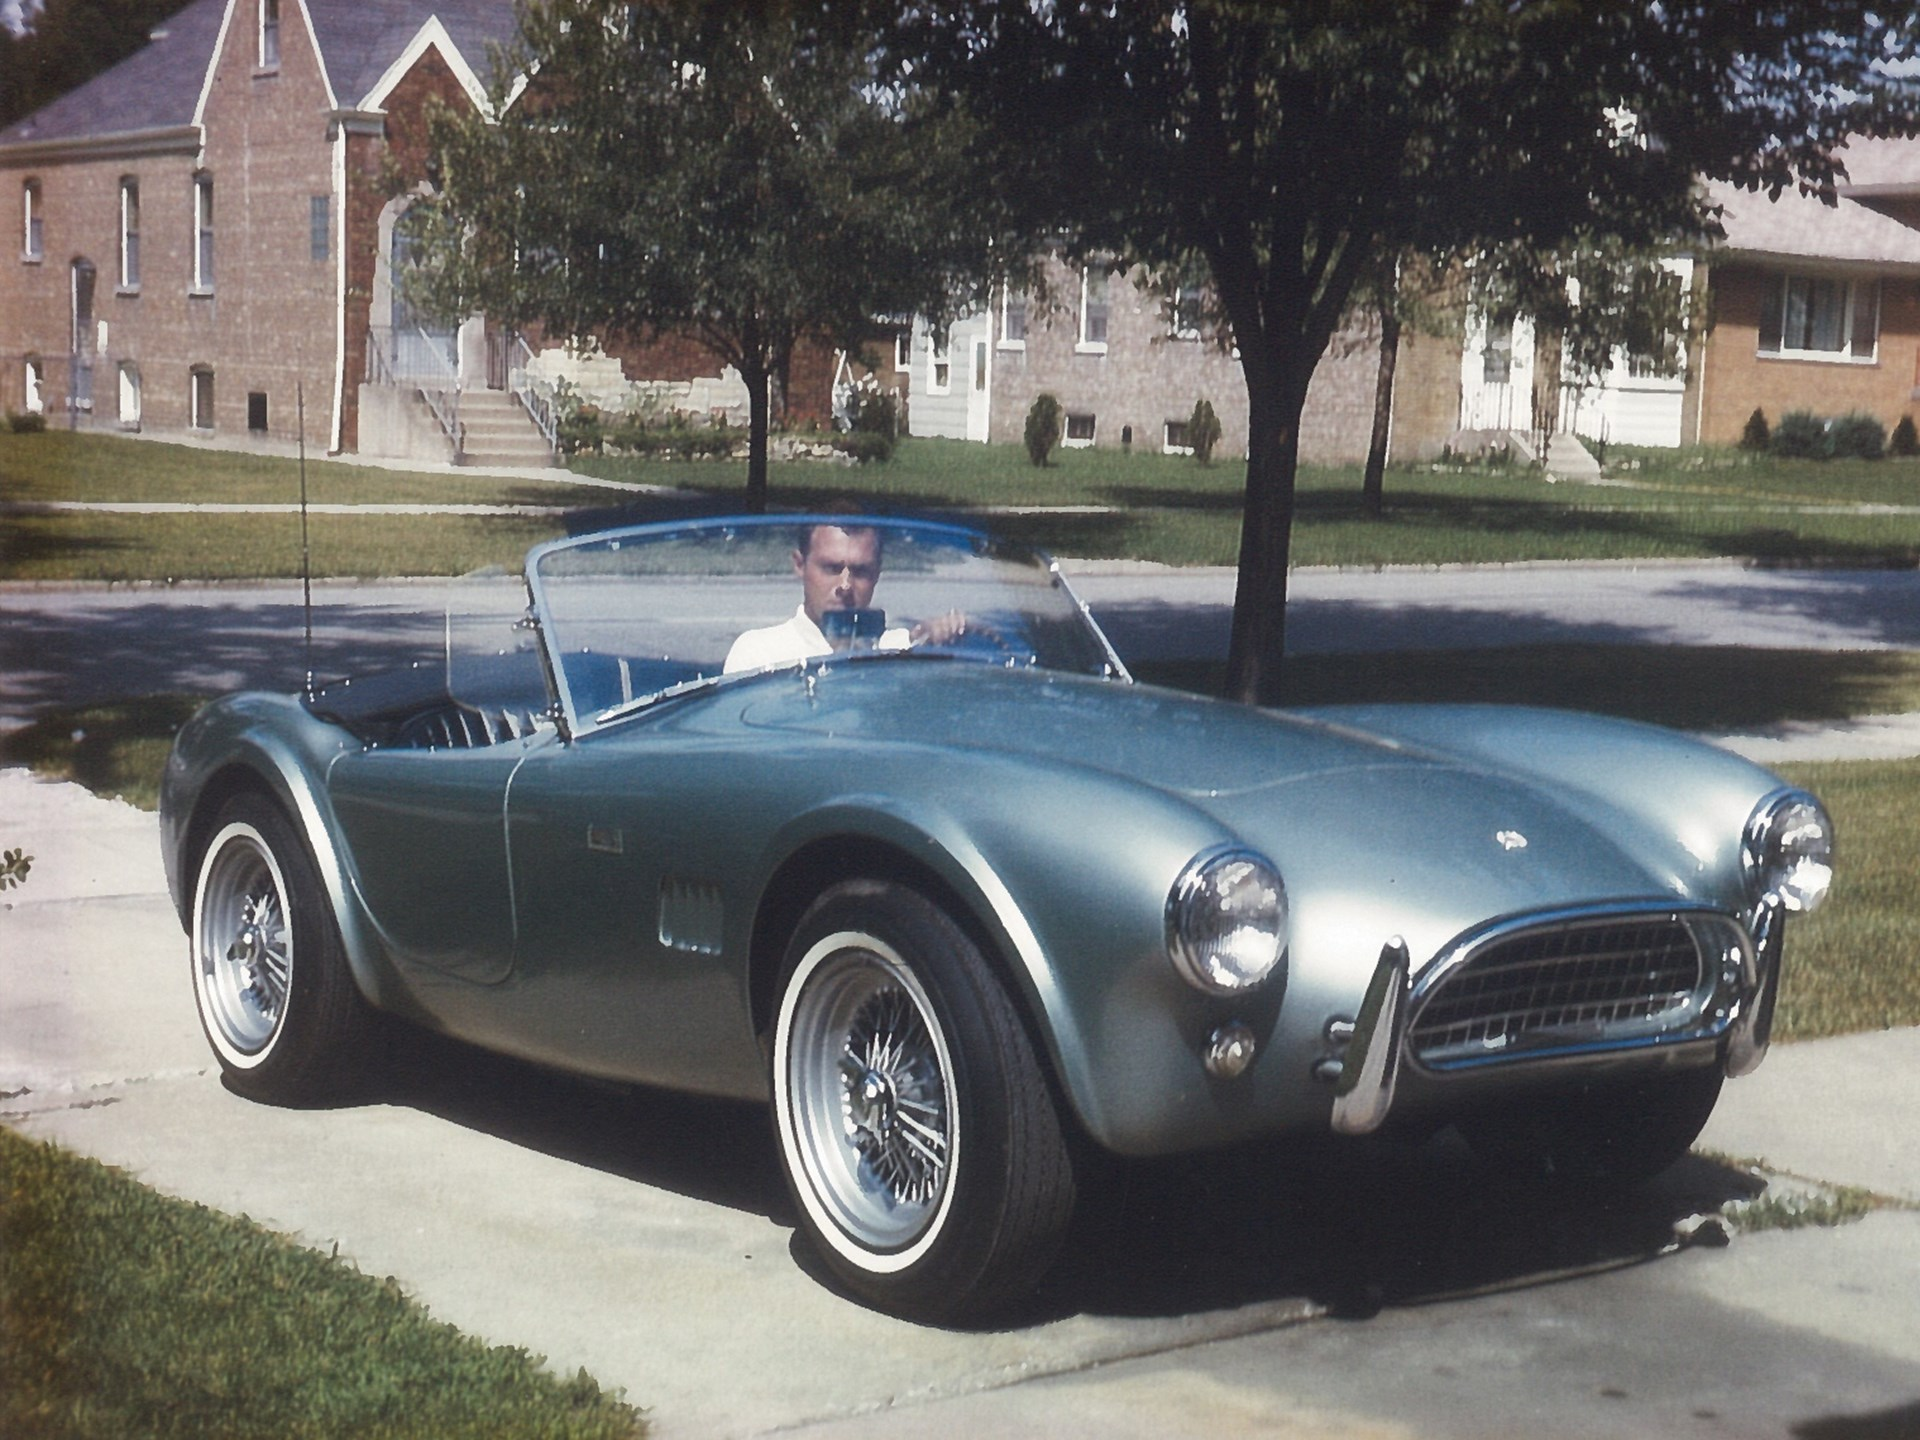 Bob Lindauer and his new Cobra on his trip to Chicago in 1964.